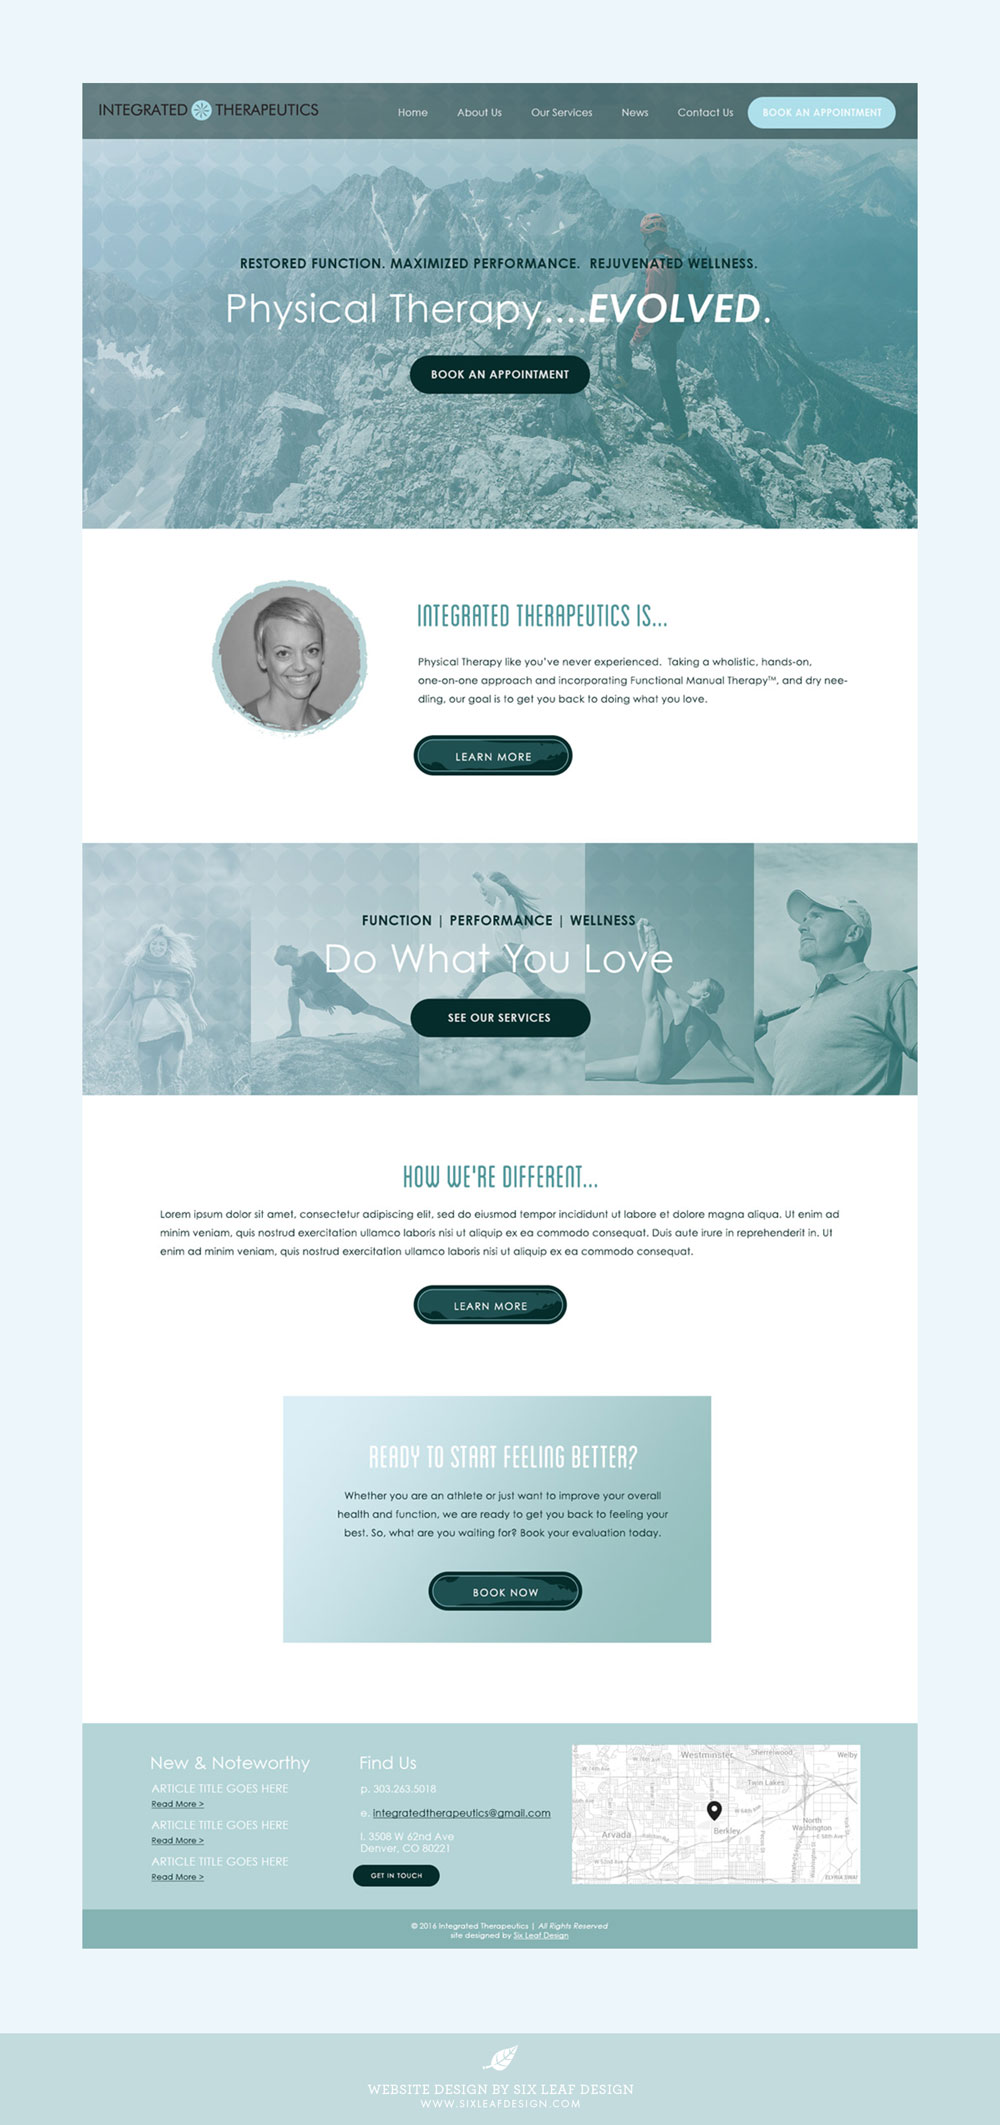 Homepage Design for Physical Therapy Business featuring Monochromatic Cool Color Palette and Active Photography